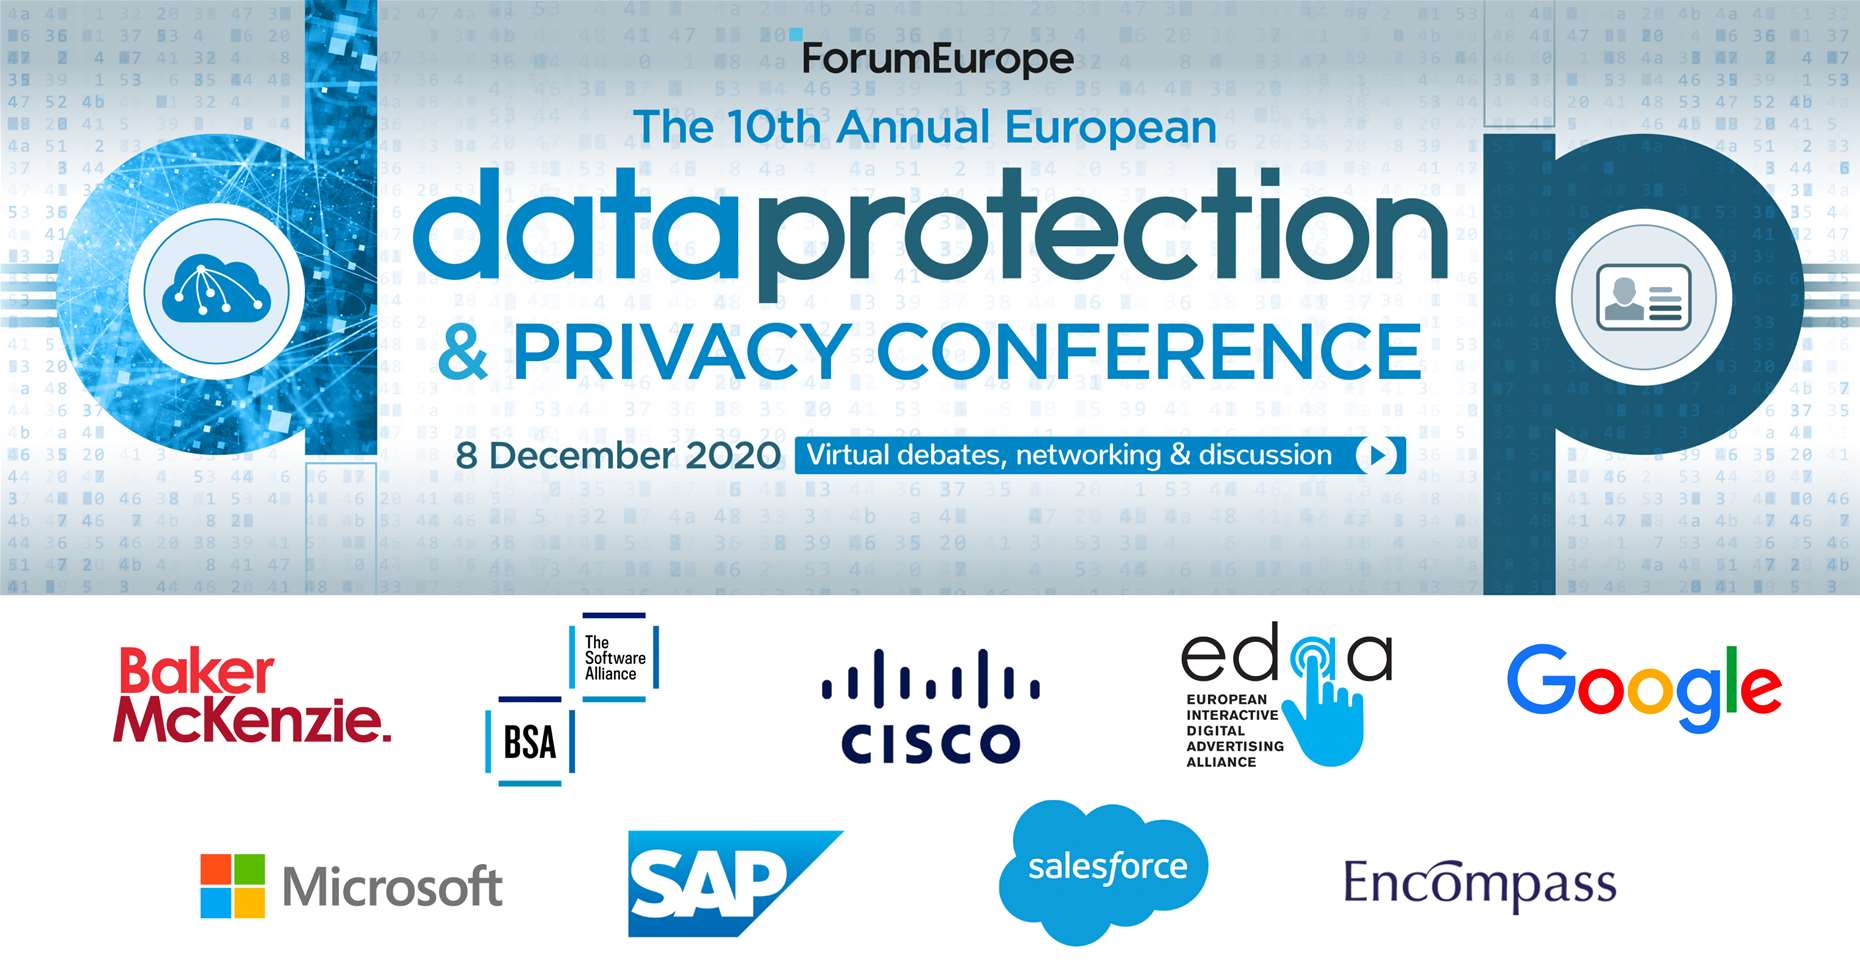 The 10th Annual European Data Protection & Privacy Conference | 19 March 2020